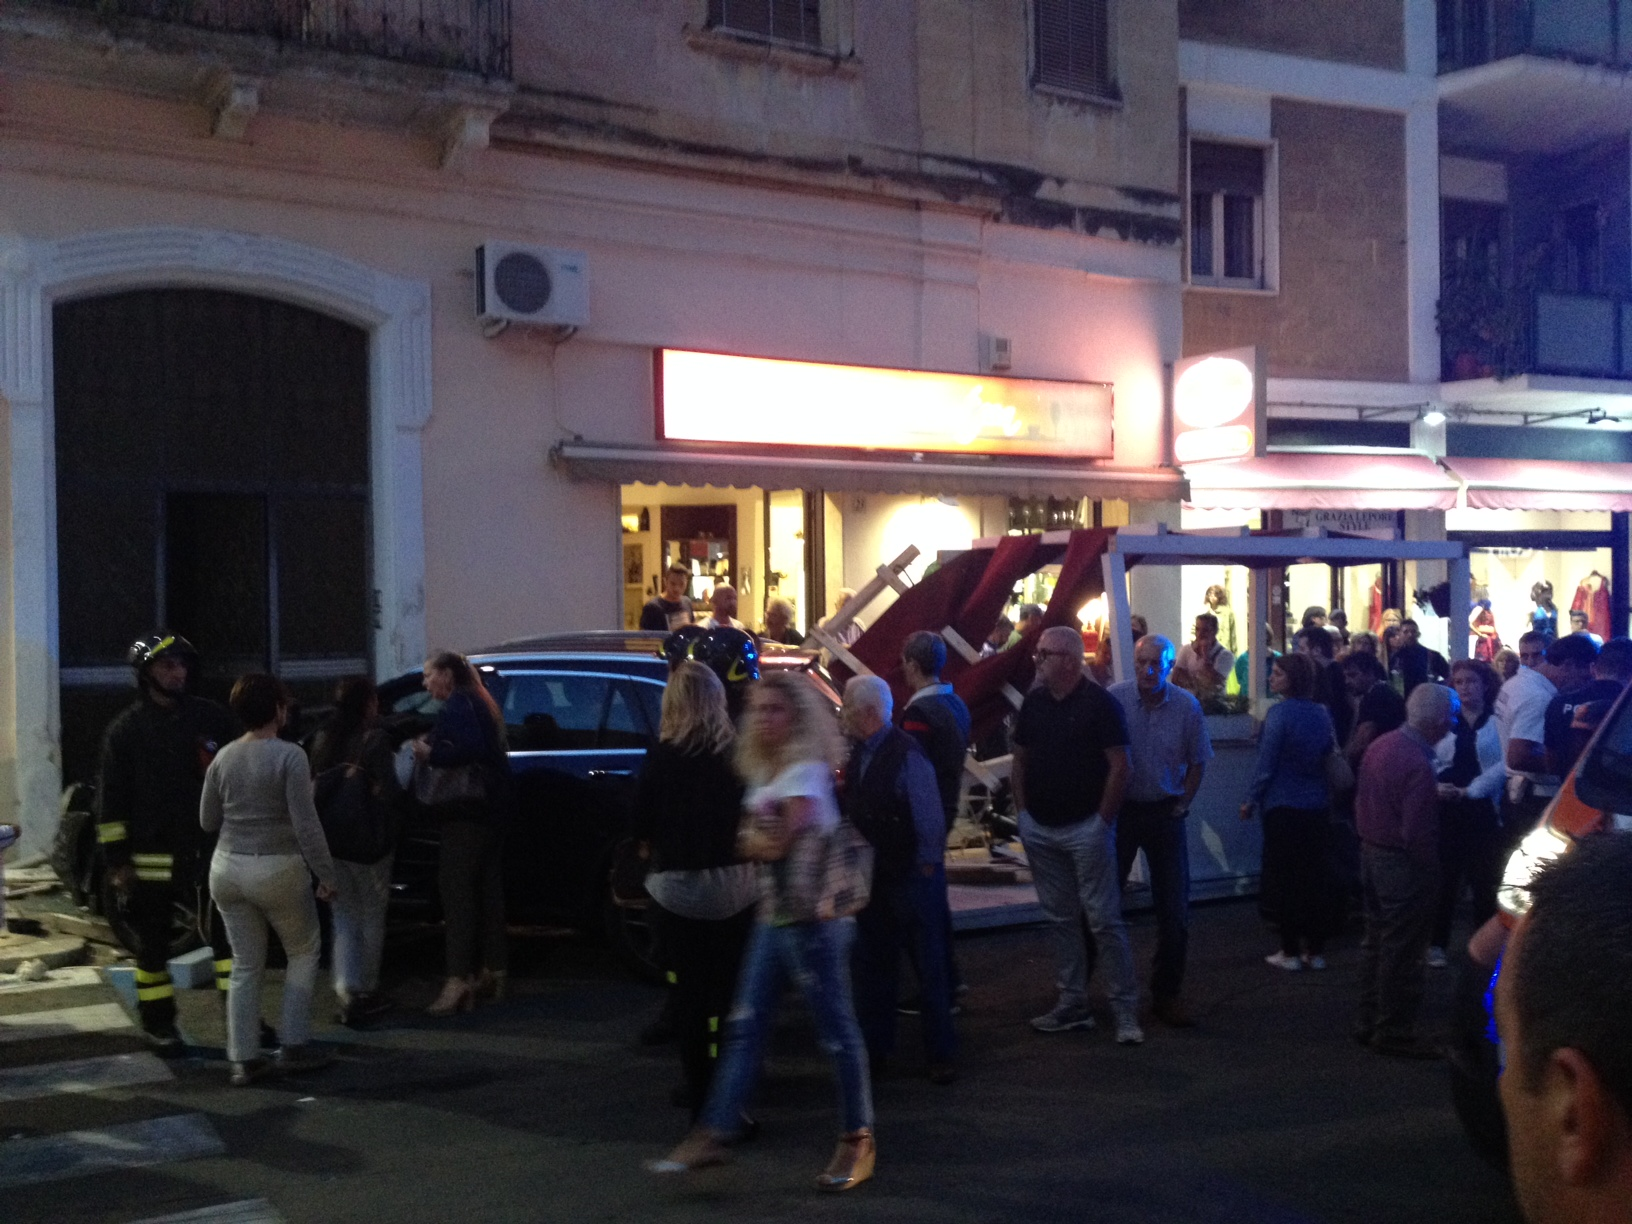 Mercedes sfonda gazebo del bar, spettacolare incidente in pieno centro